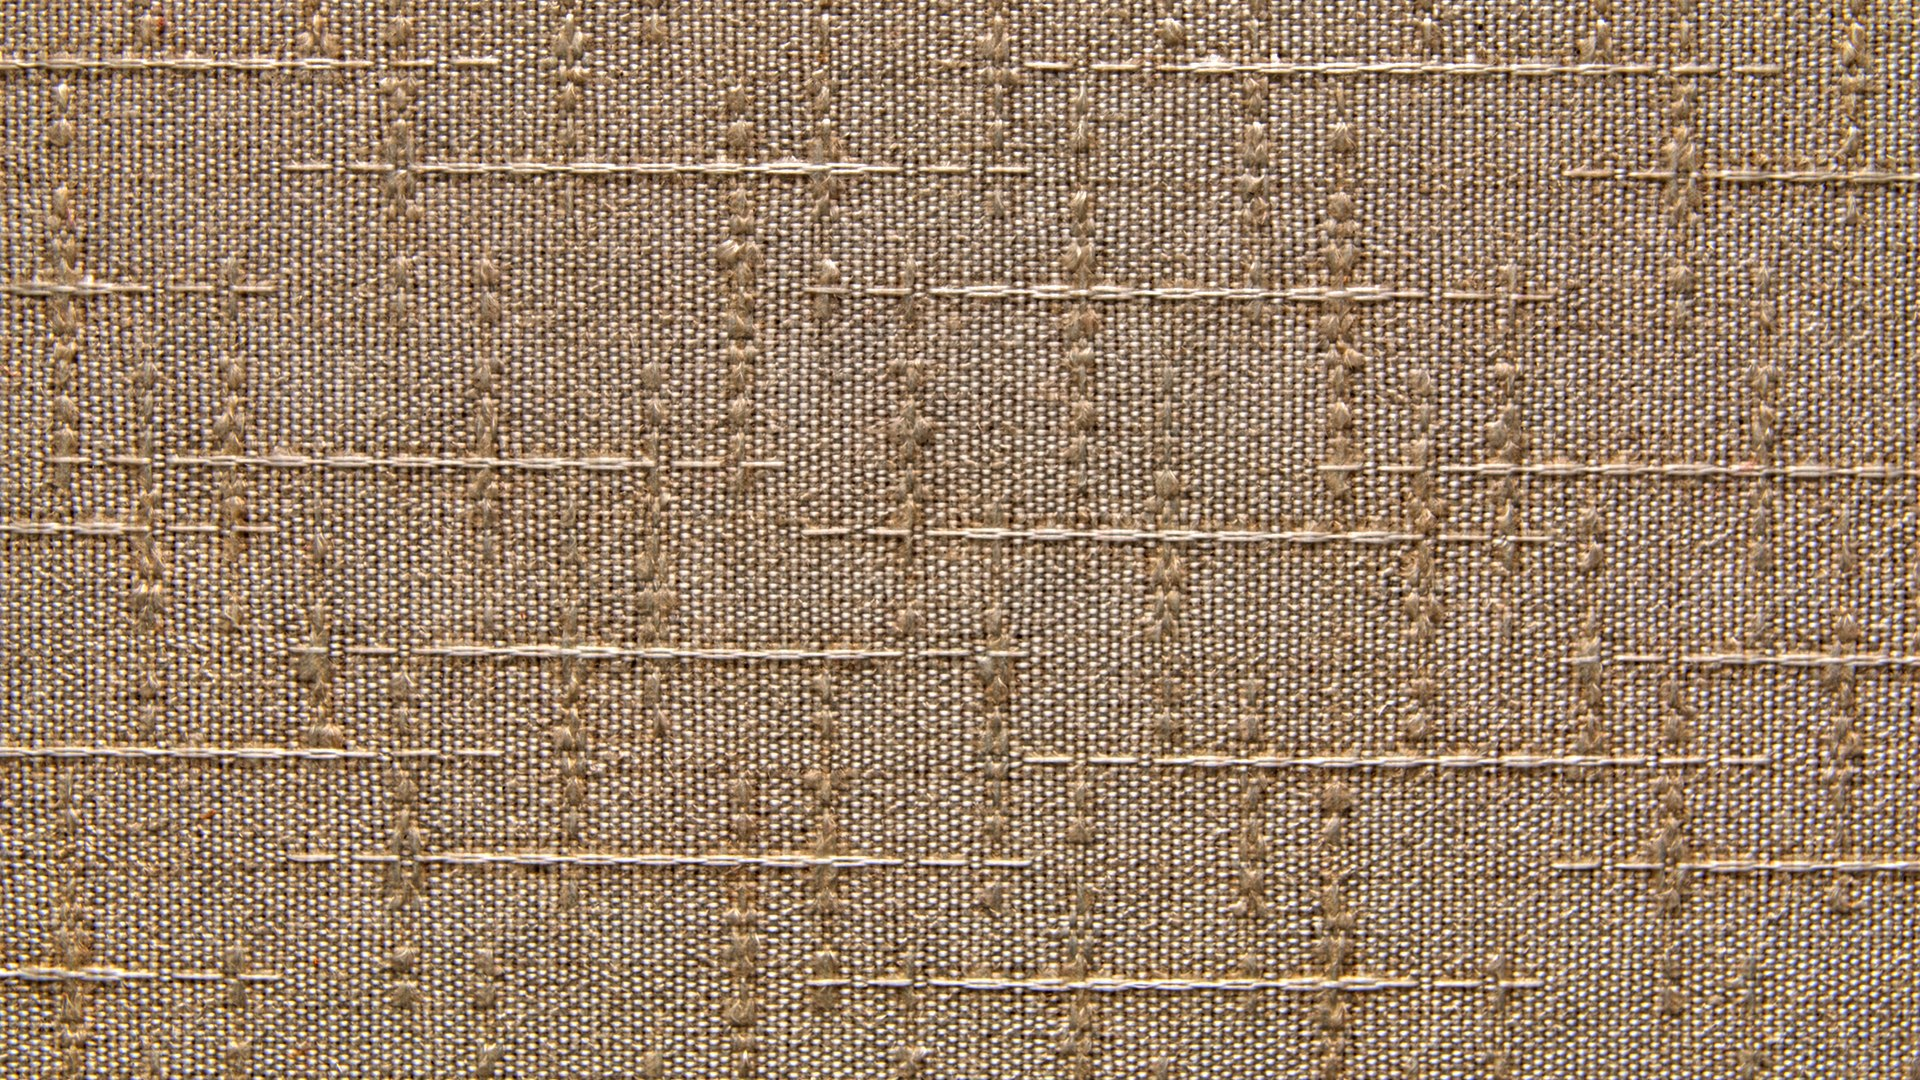 Vintage Fabric Canvas Texture HD 1920 x 1080p